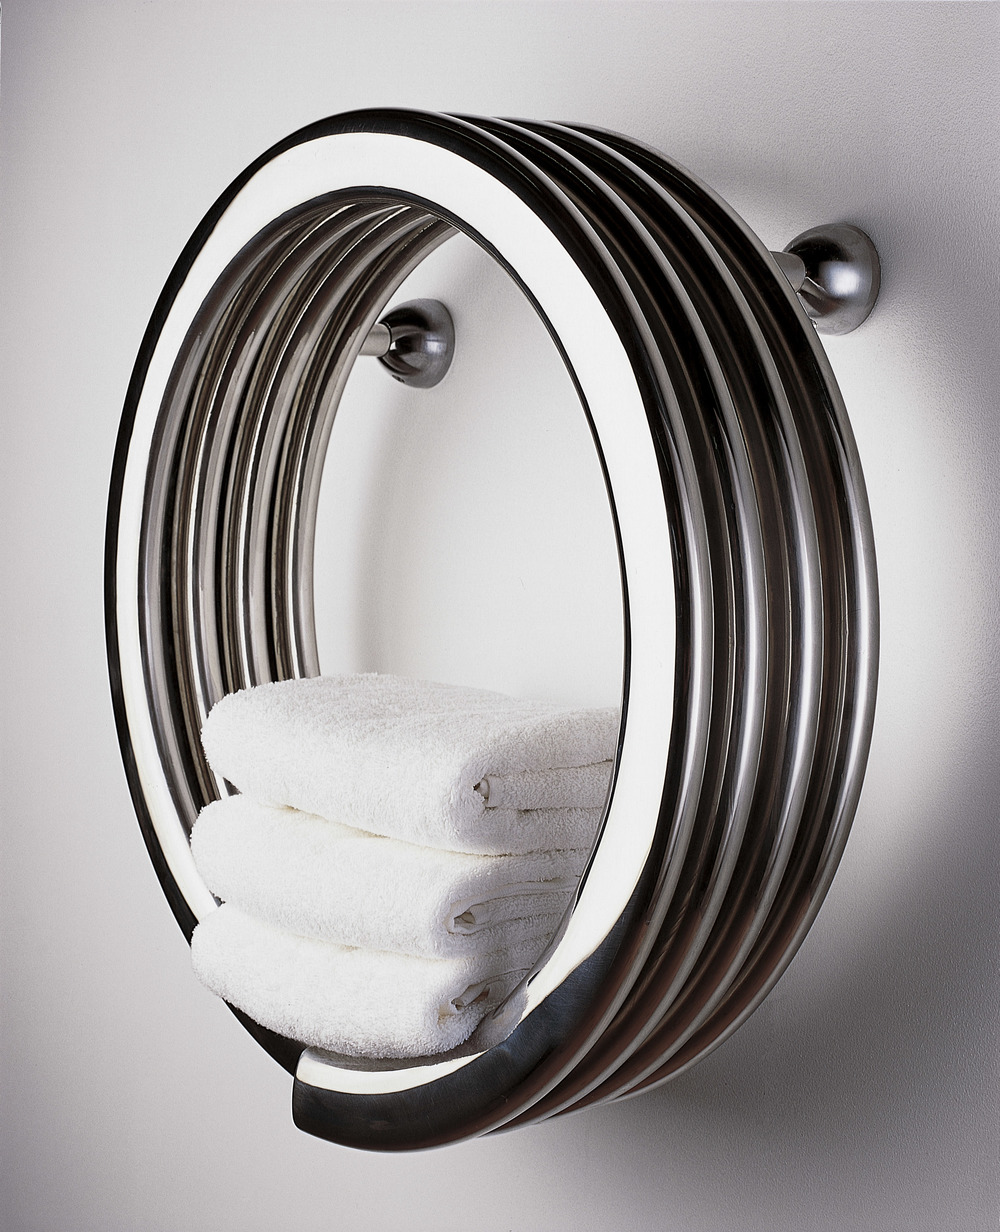 Hot Hoop - Stainless Steel Mirror Finish (Blue Background - With Towel).jpg